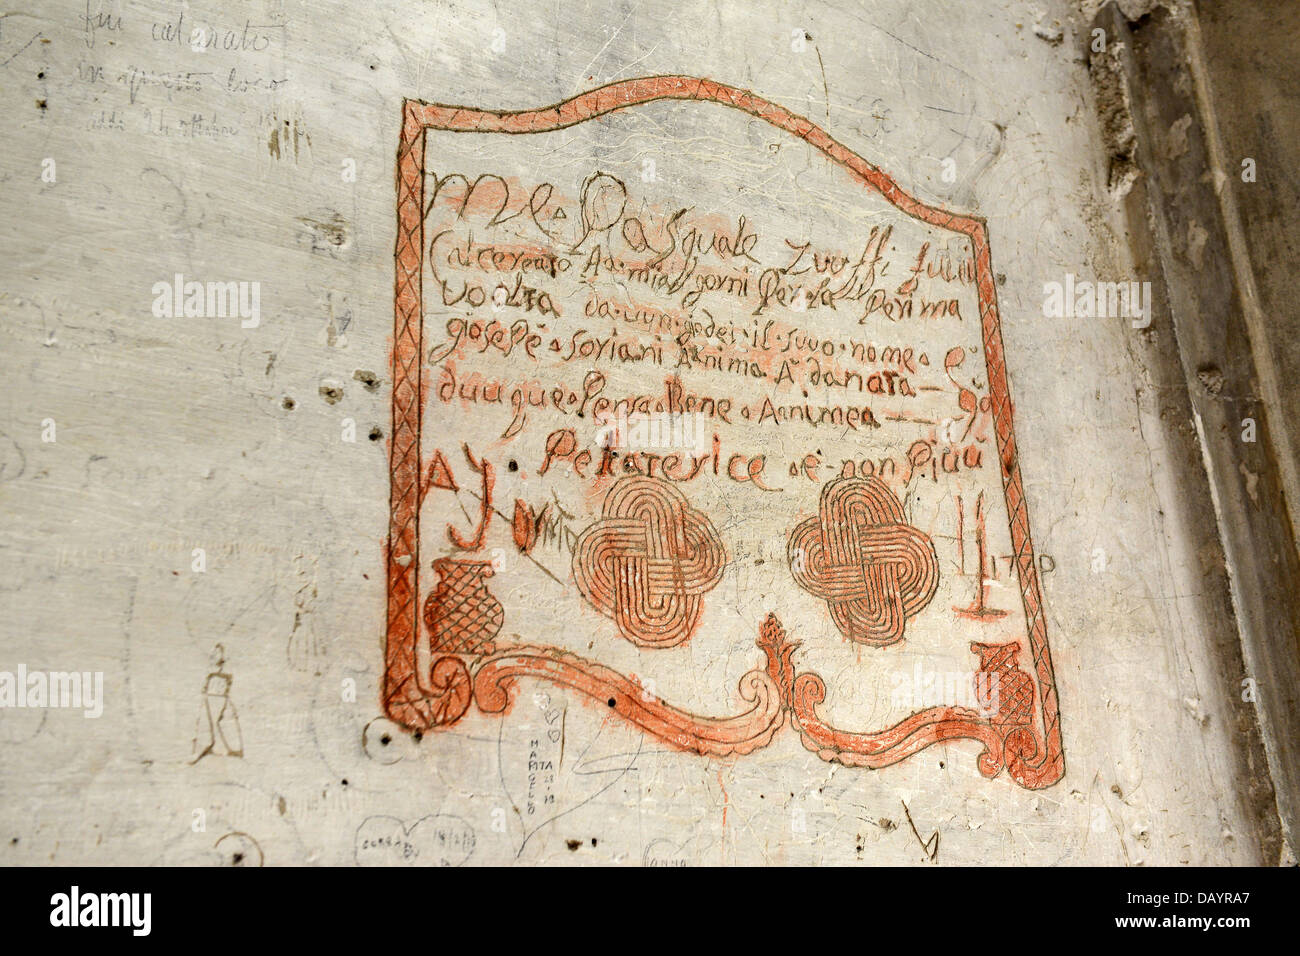 Graffiti and markings made by 18th century prisoners in the dungeon at Dozza Castle in Italy - Stock Image